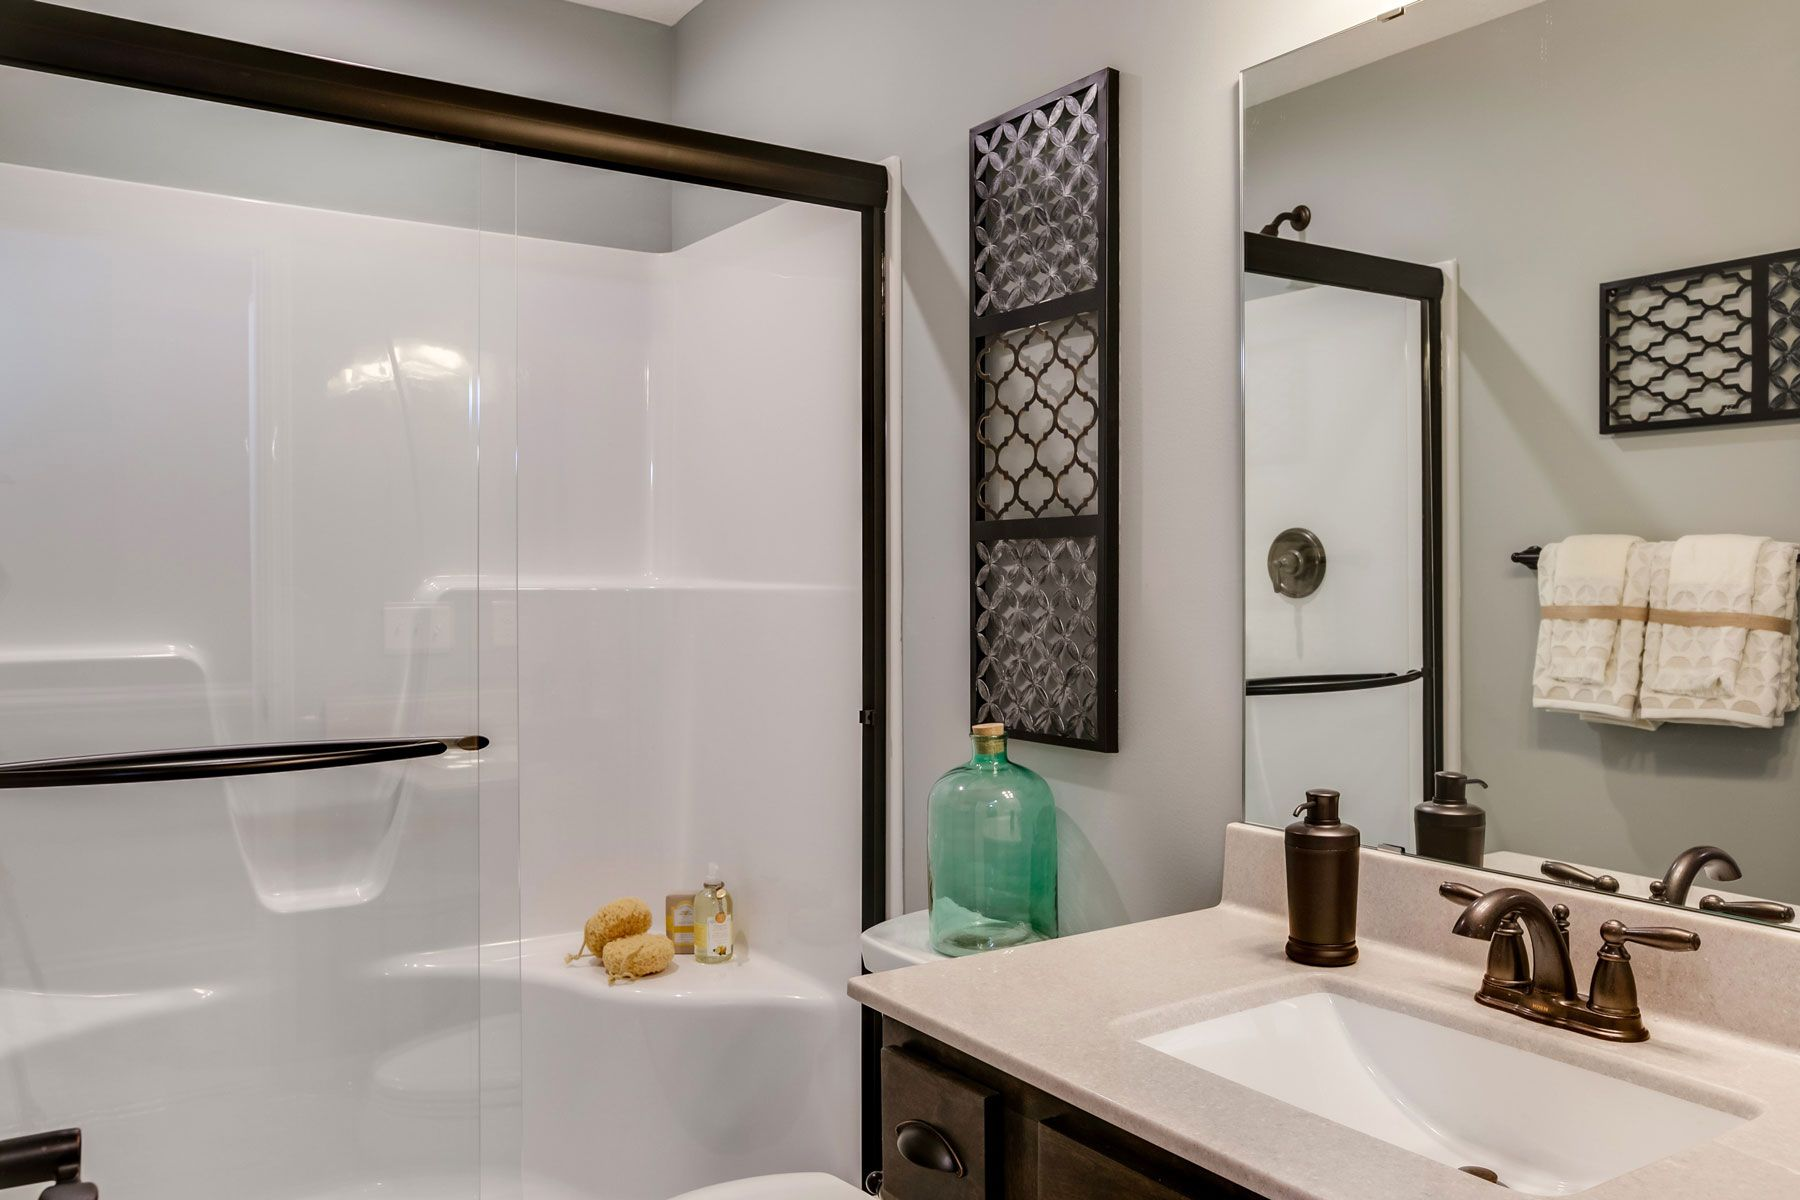 Bathroom featured in the Graystone By M/I Homes in Minneapolis-St. Paul, MN